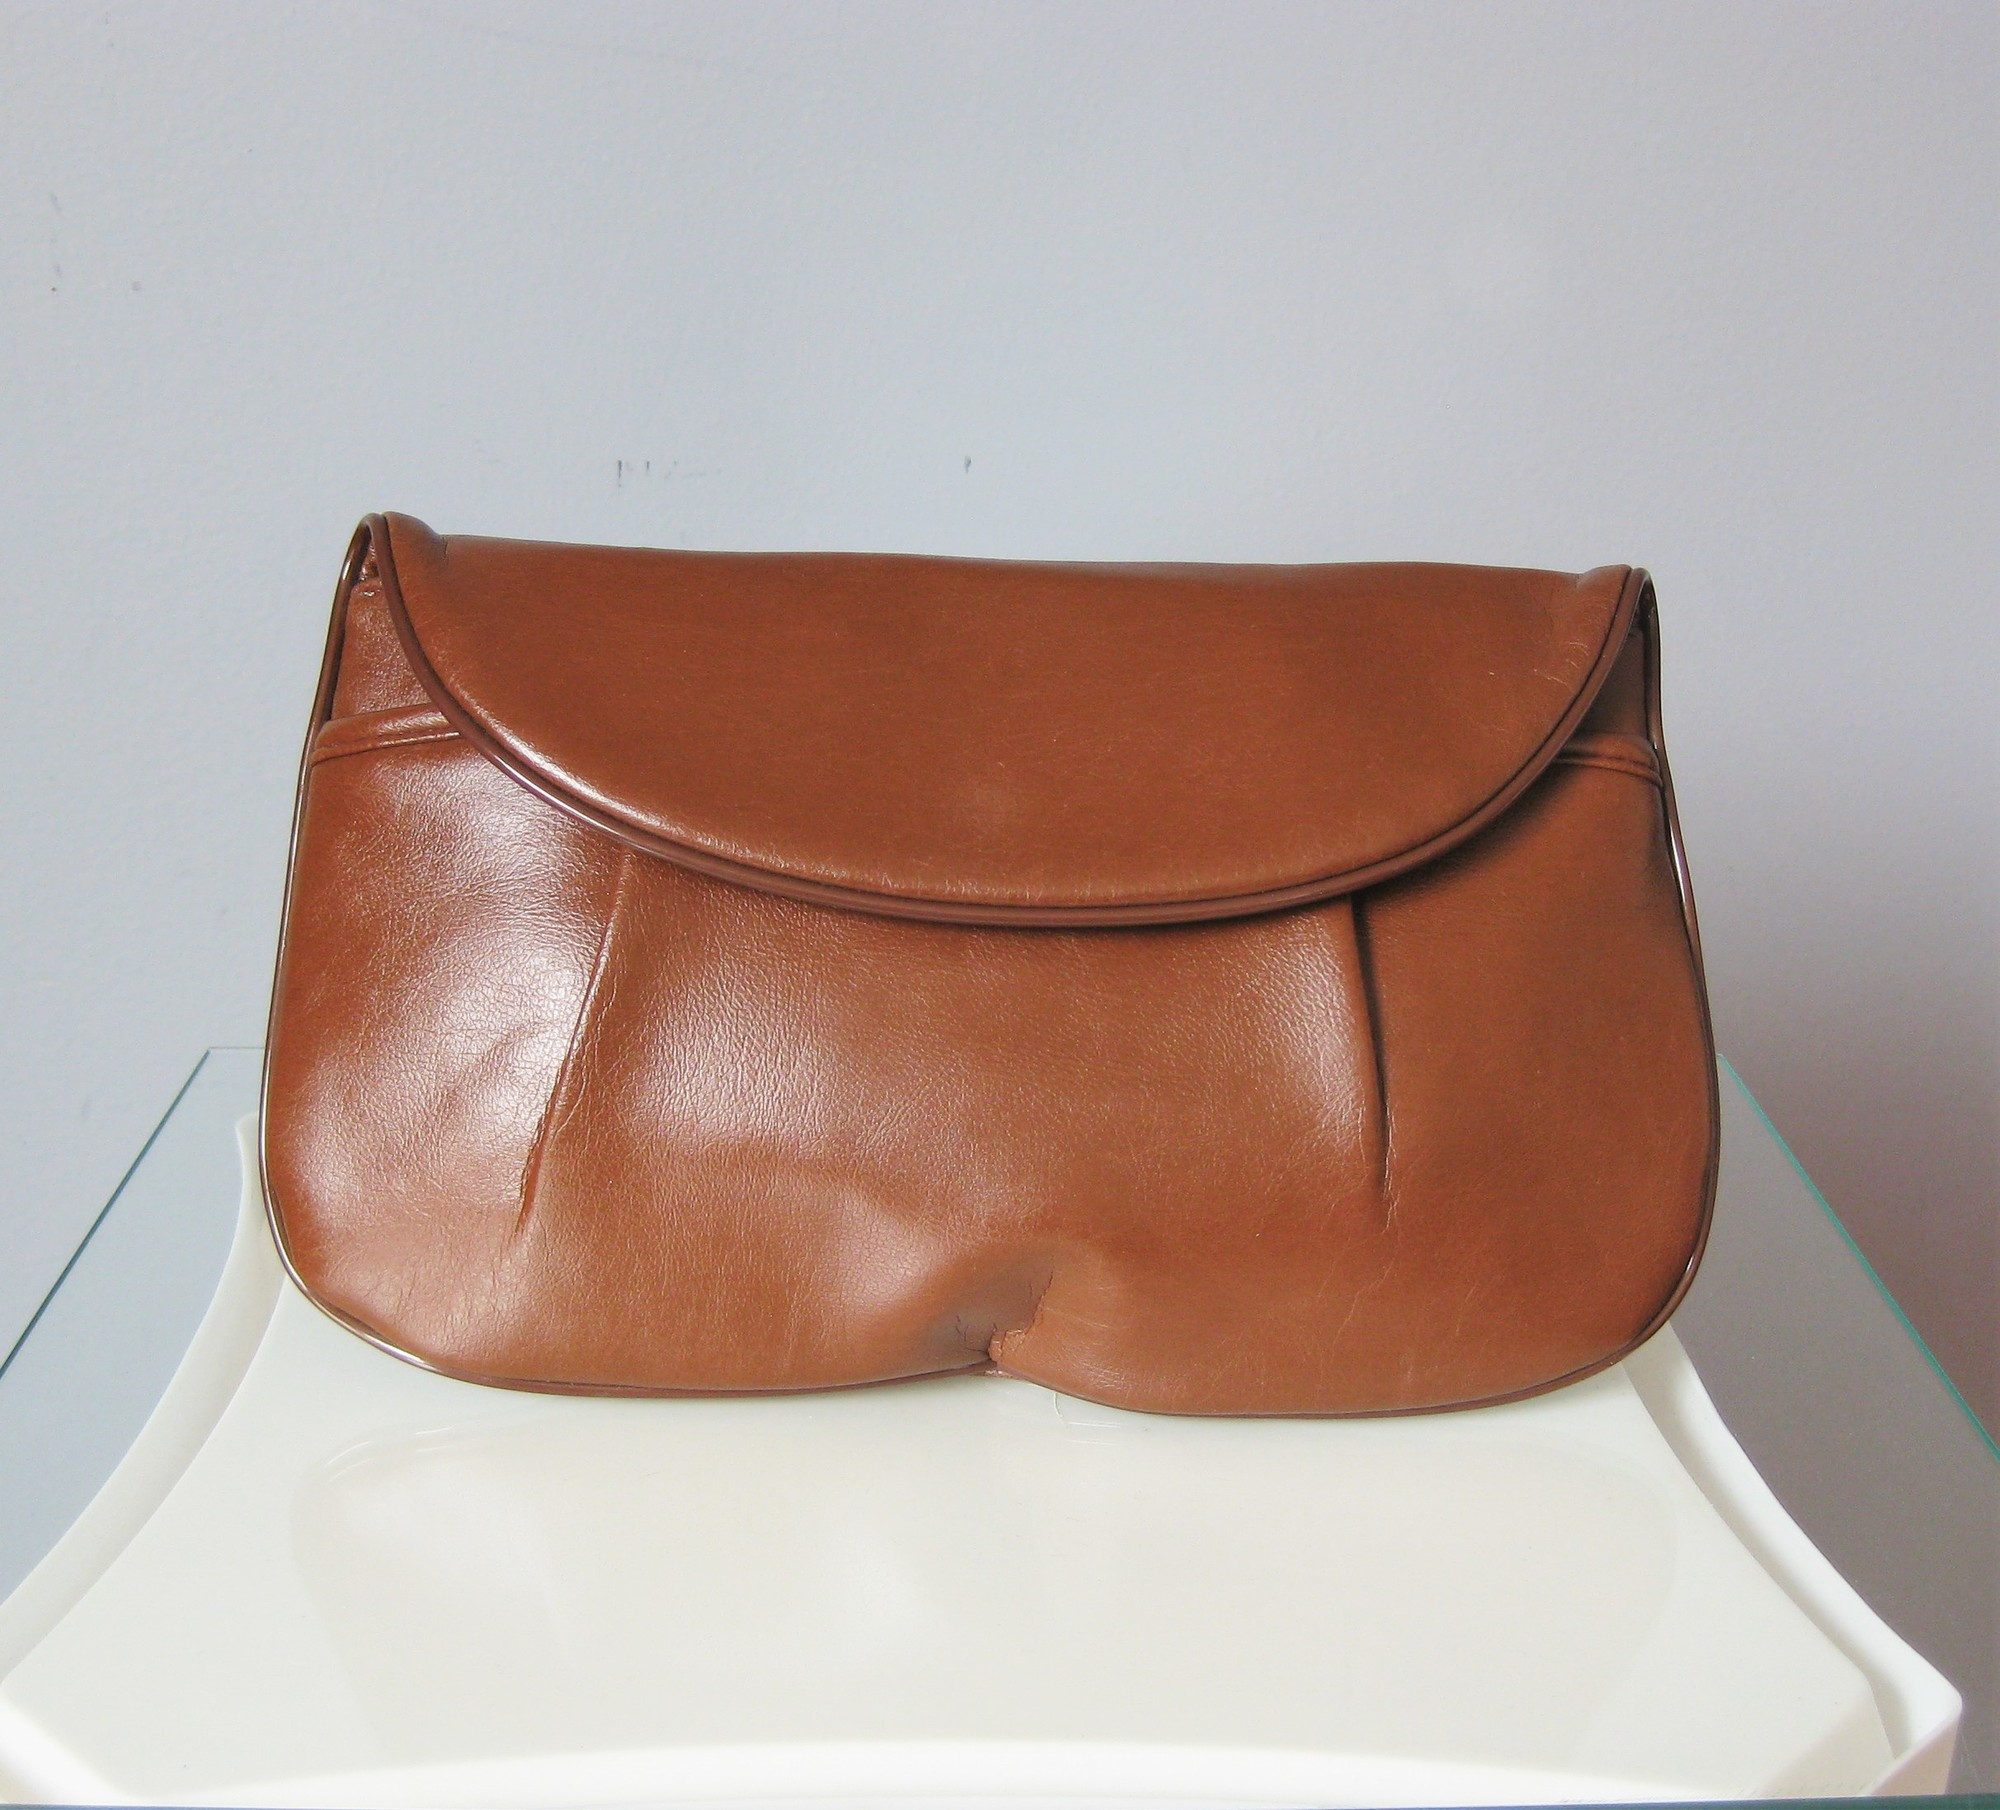 Super simple faux leather clutch in the warmest brown tone ever.<br /> Rounded shape with two compartments and a flap with snap closure<br /> Brand tag missing<br /> Excellent.  There is a mark on the inside of the flap as shown.<br /> <br /> The bag measures 10 1/2in by 6 5/8in<br /> <br /> Thanks for looking!<br /> #15209